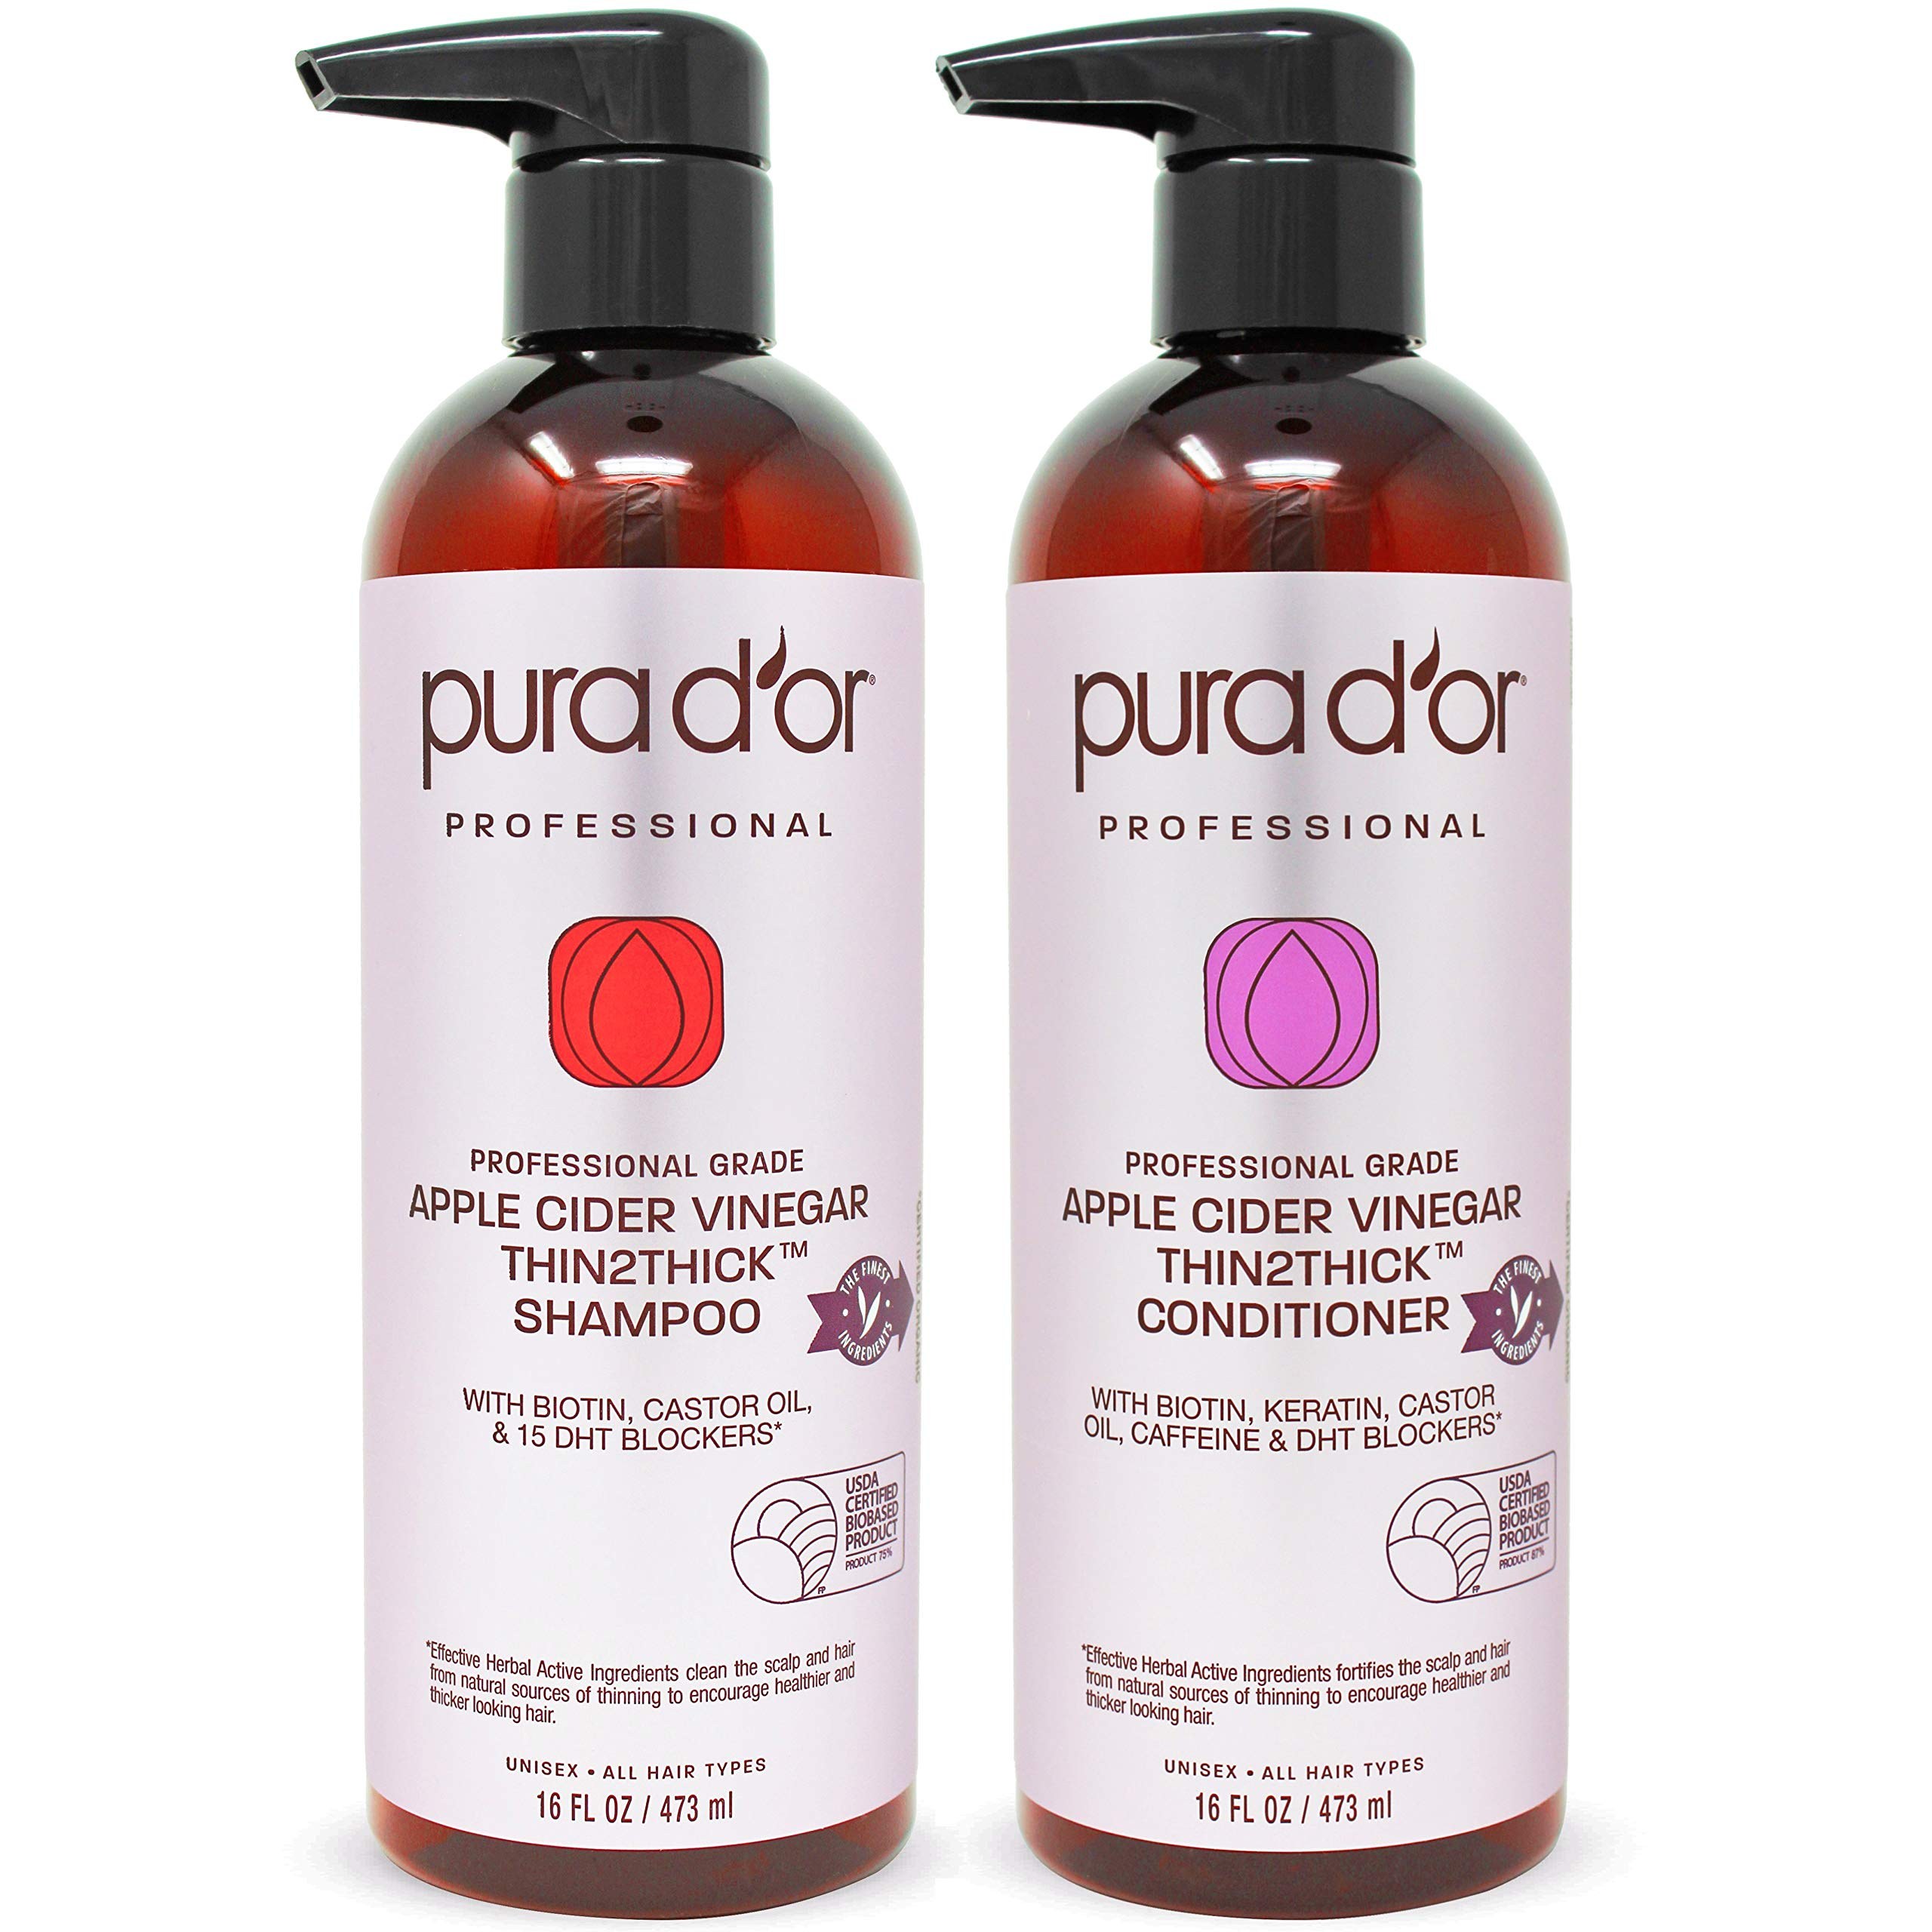 PURA D'OR Professional Grade Biotin Red Apple Cider Vinegar Thin2Thick Shampoo & Conditioner Set (16oz x 2) Keratin, Caffeine, Castor Oil Sulfate Free, Natural Ingredients: All Hair Types, Men & Women by PURA D'OR